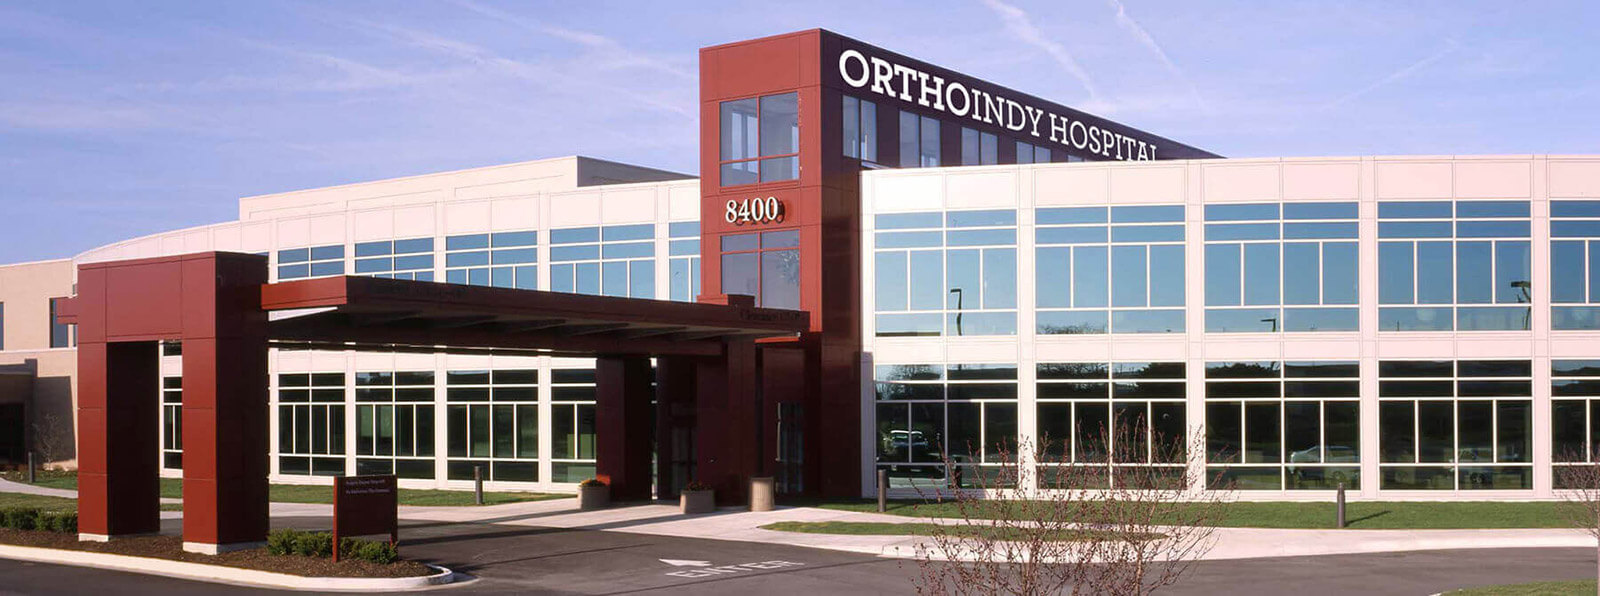 OrthoIndy building